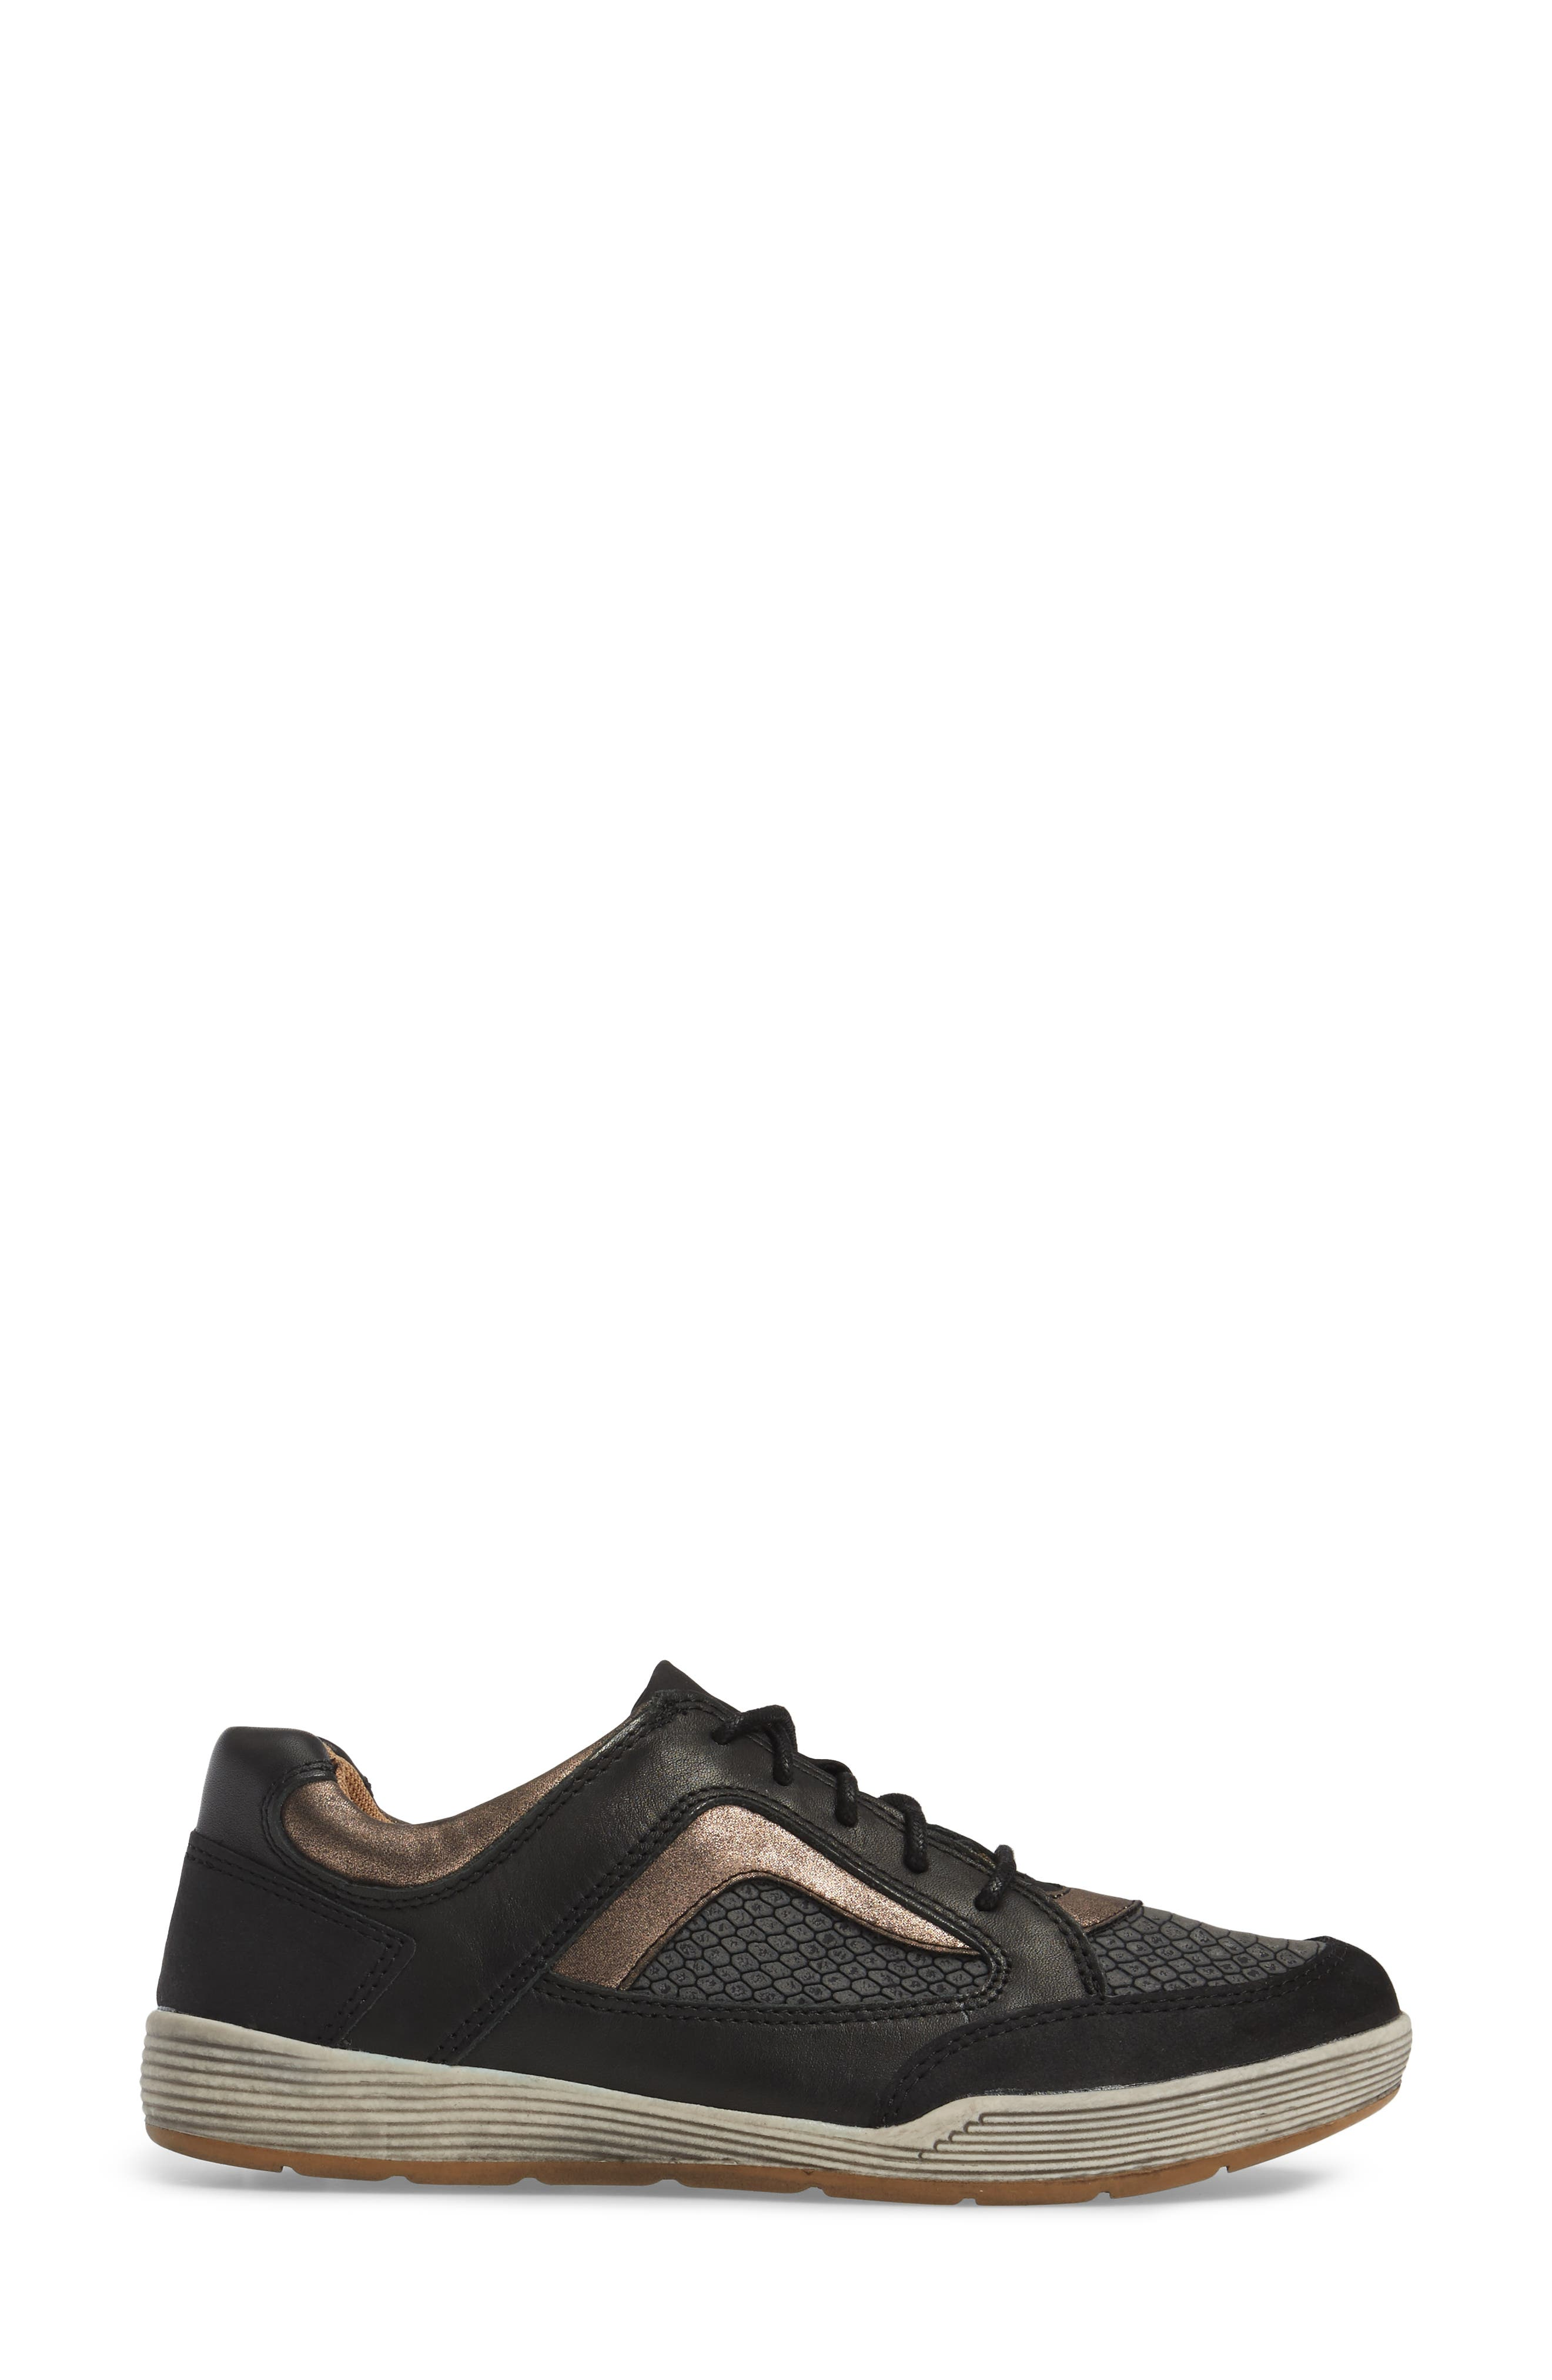 Lemont Snake Embossed Sneaker,                             Alternate thumbnail 3, color,                             BLACK SNAKE PRINT LEATHER